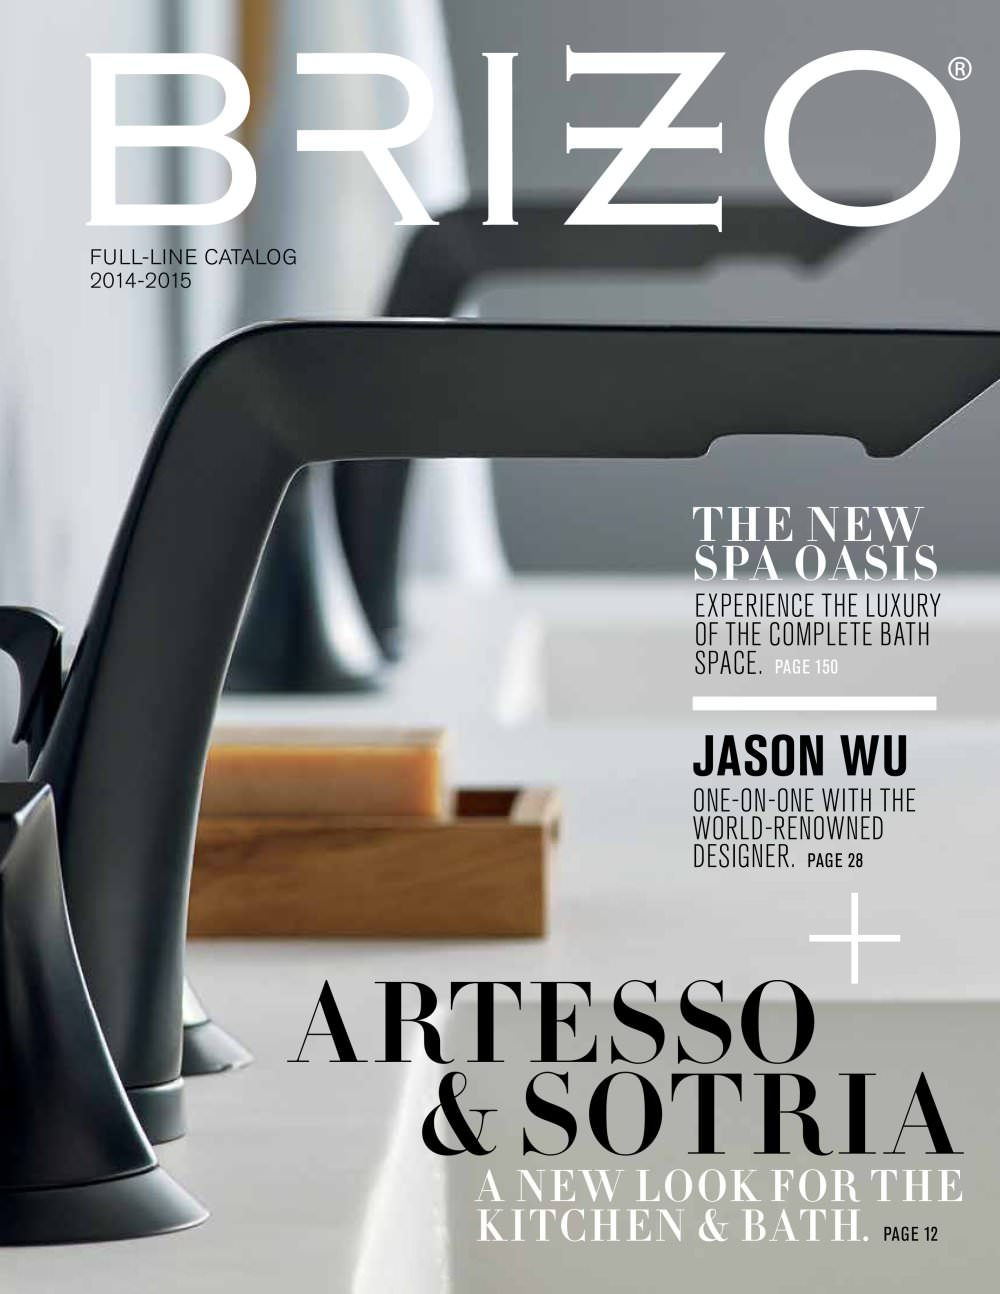 Brizo Full-line Catalog 2014-2015 - Brizo - PDF Catalogues ... on kitchen in a brick wall background, kitchen ideas with red brick, kitchen brick used in primary colors, kitchen designs with brick walls,